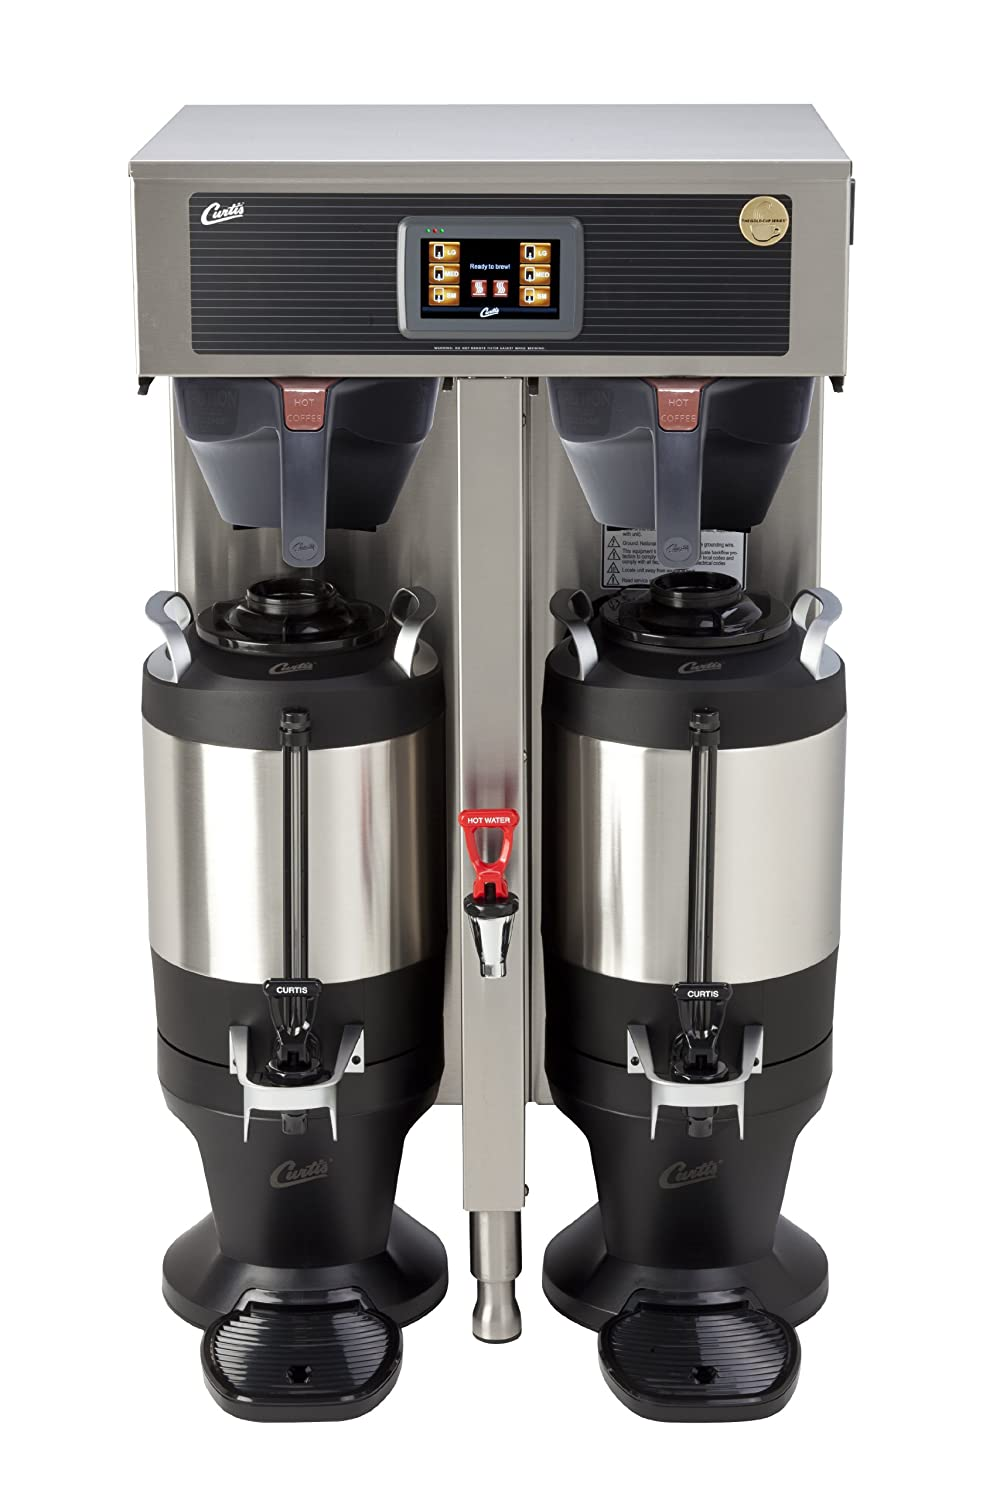 Wilbur Curtis G4 ThermoPro Twin Coffee Brewer, 1.5 Gallon - Commercial Coffee Brewer  - G4TP2T10A3100 (Each) Wilbur Curtis Co. Inc.